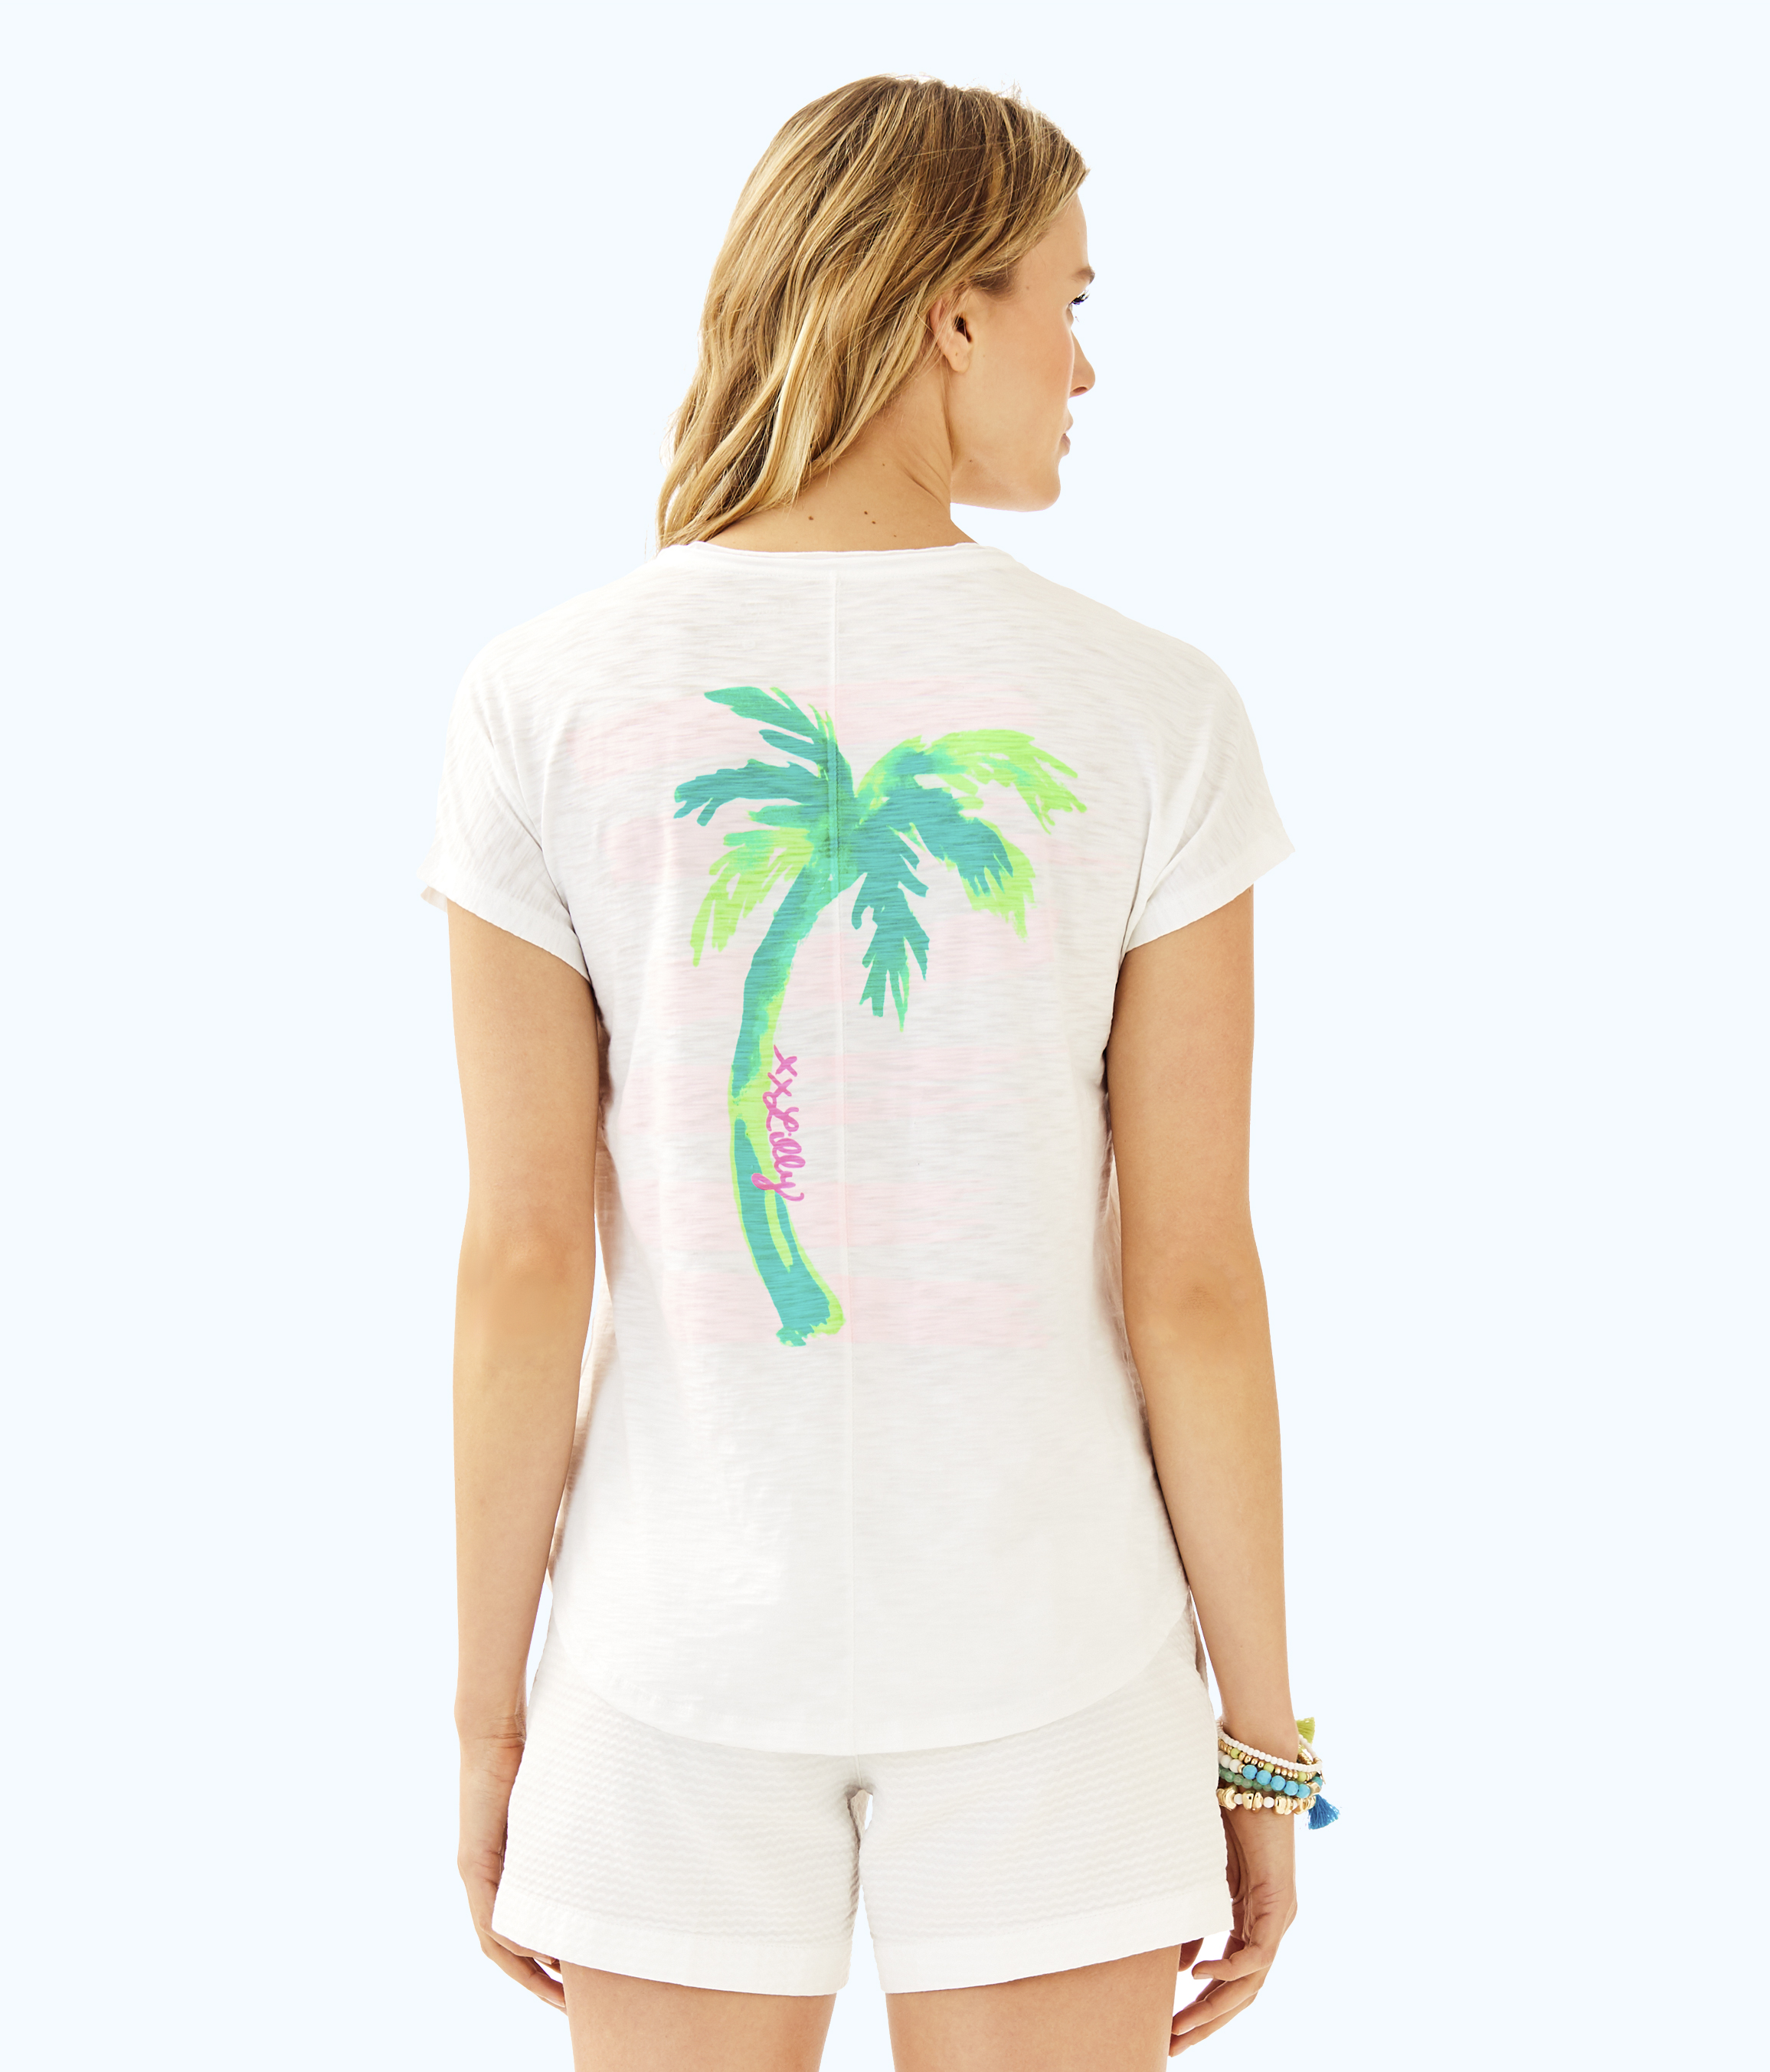 """Lilly Pulitzer's """"Happiness Never Goes Out of Style"""" T-shirt."""